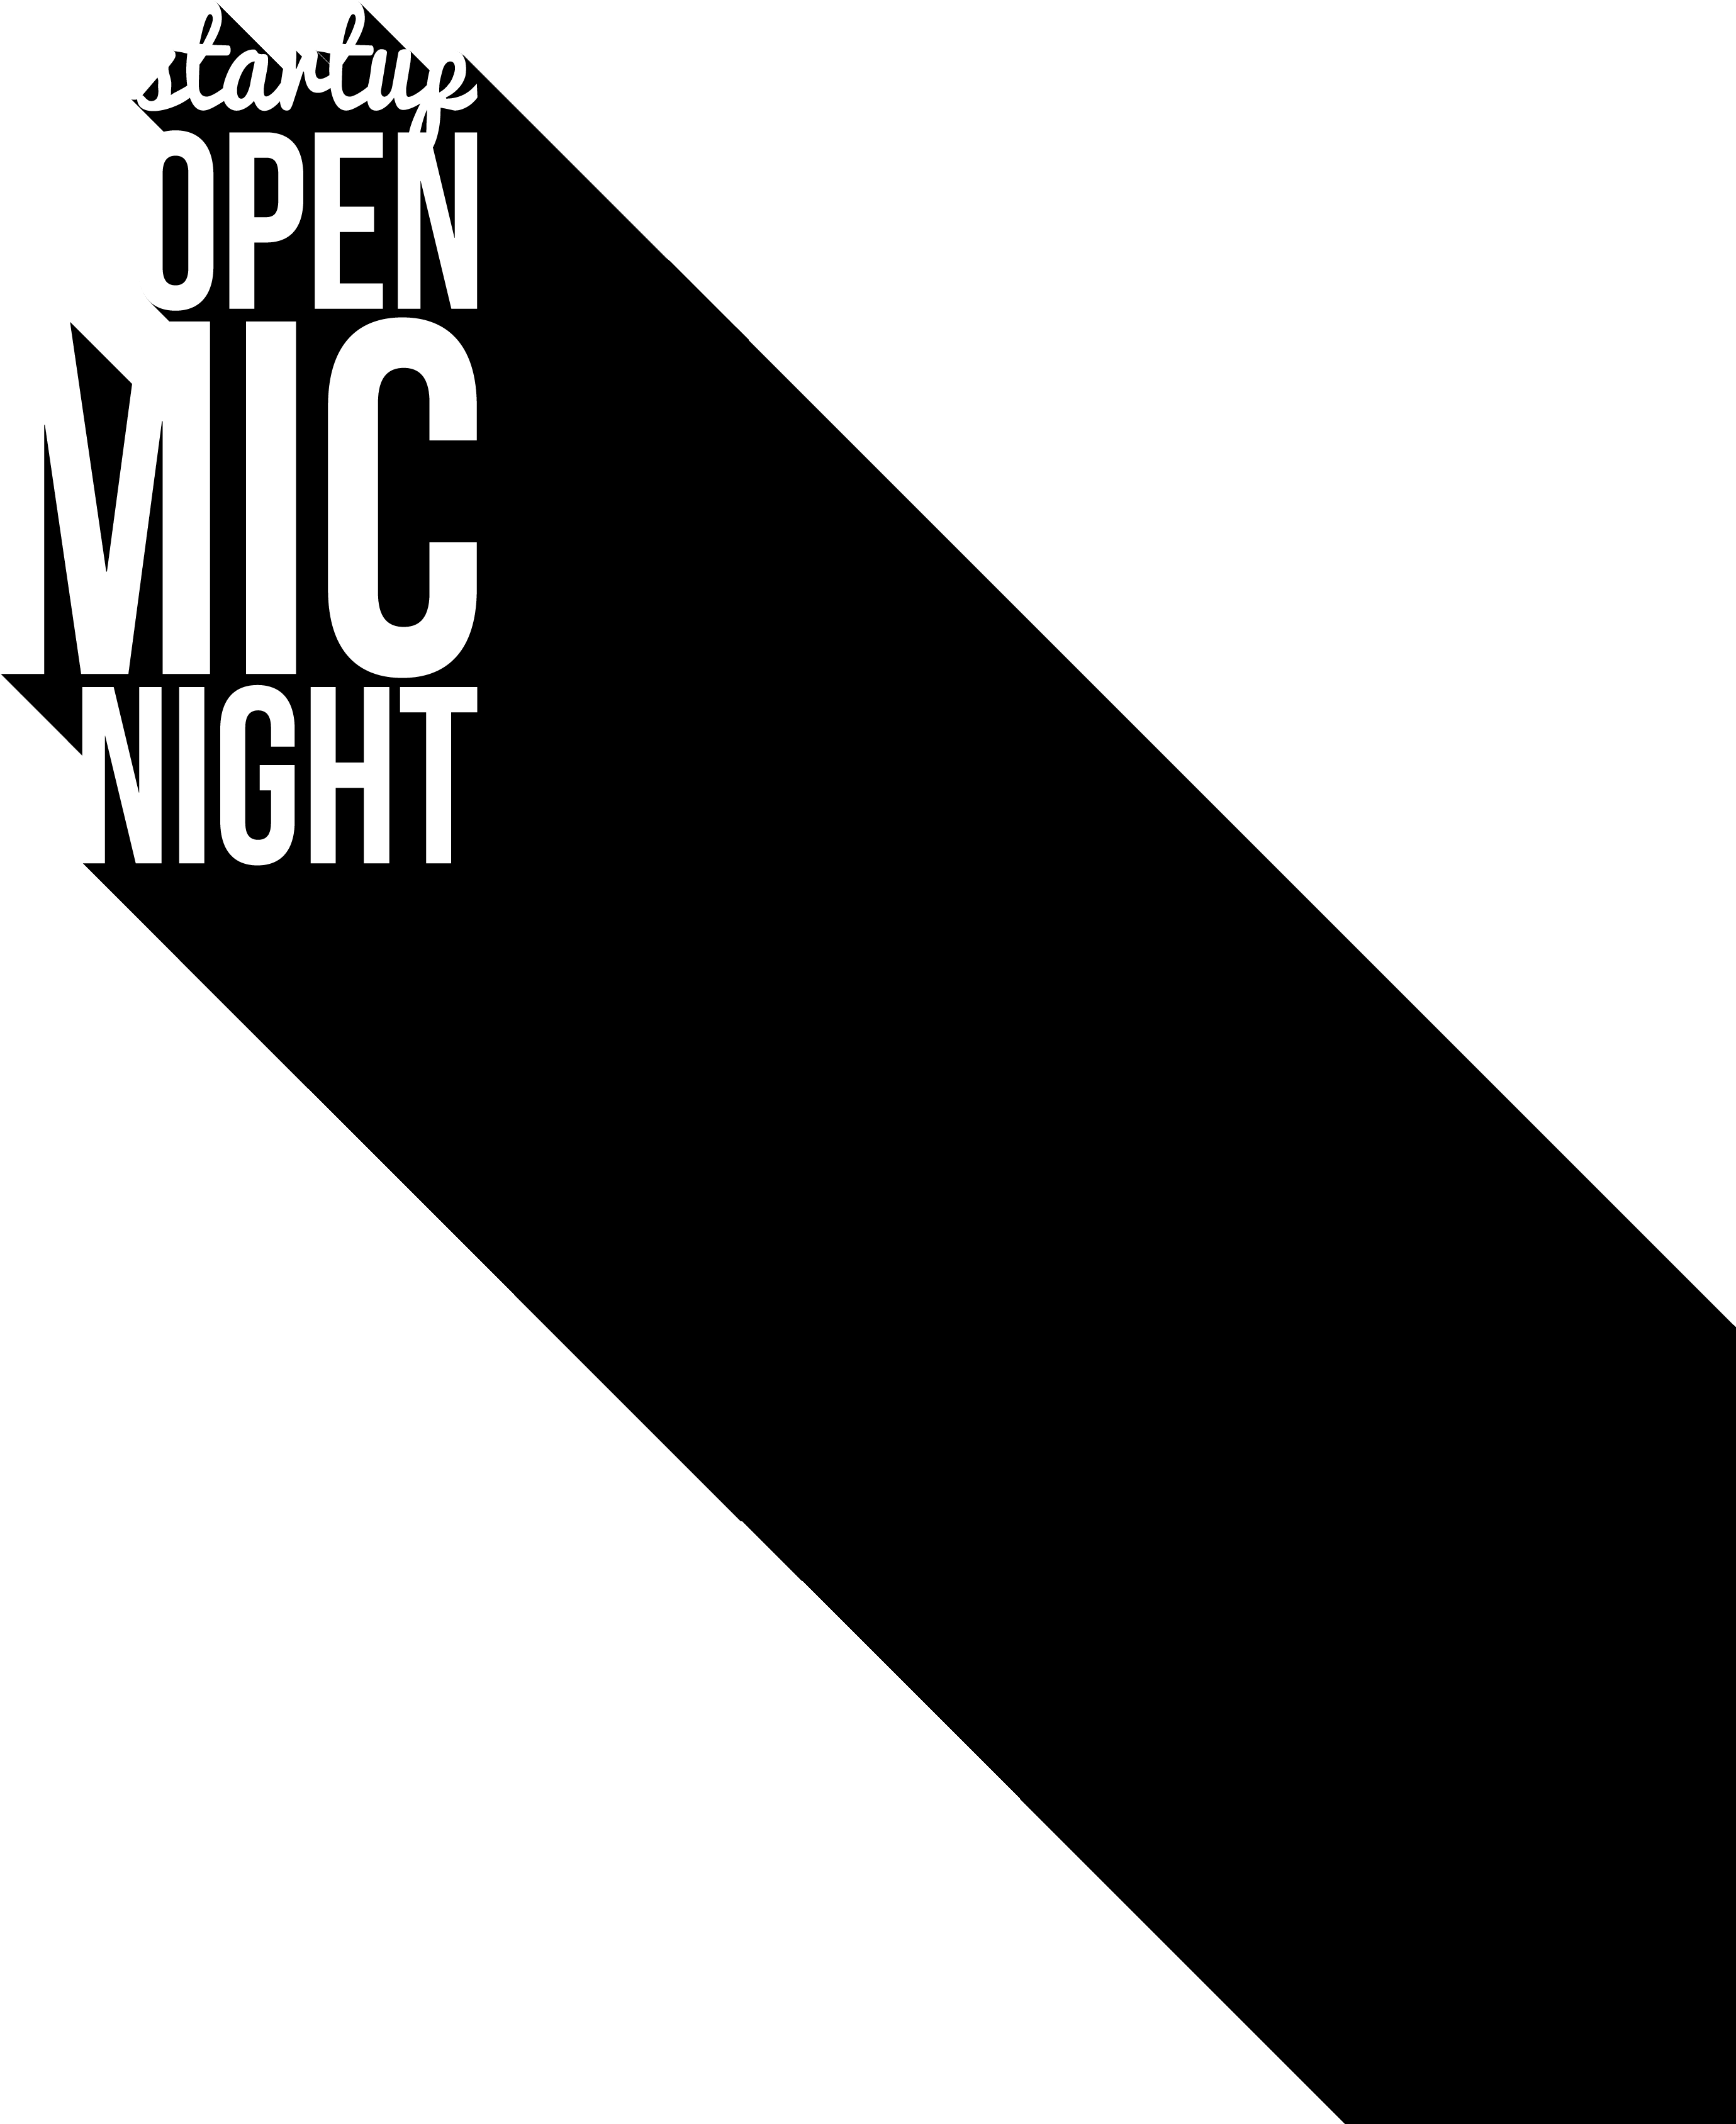 Open Mic PNG - 77775